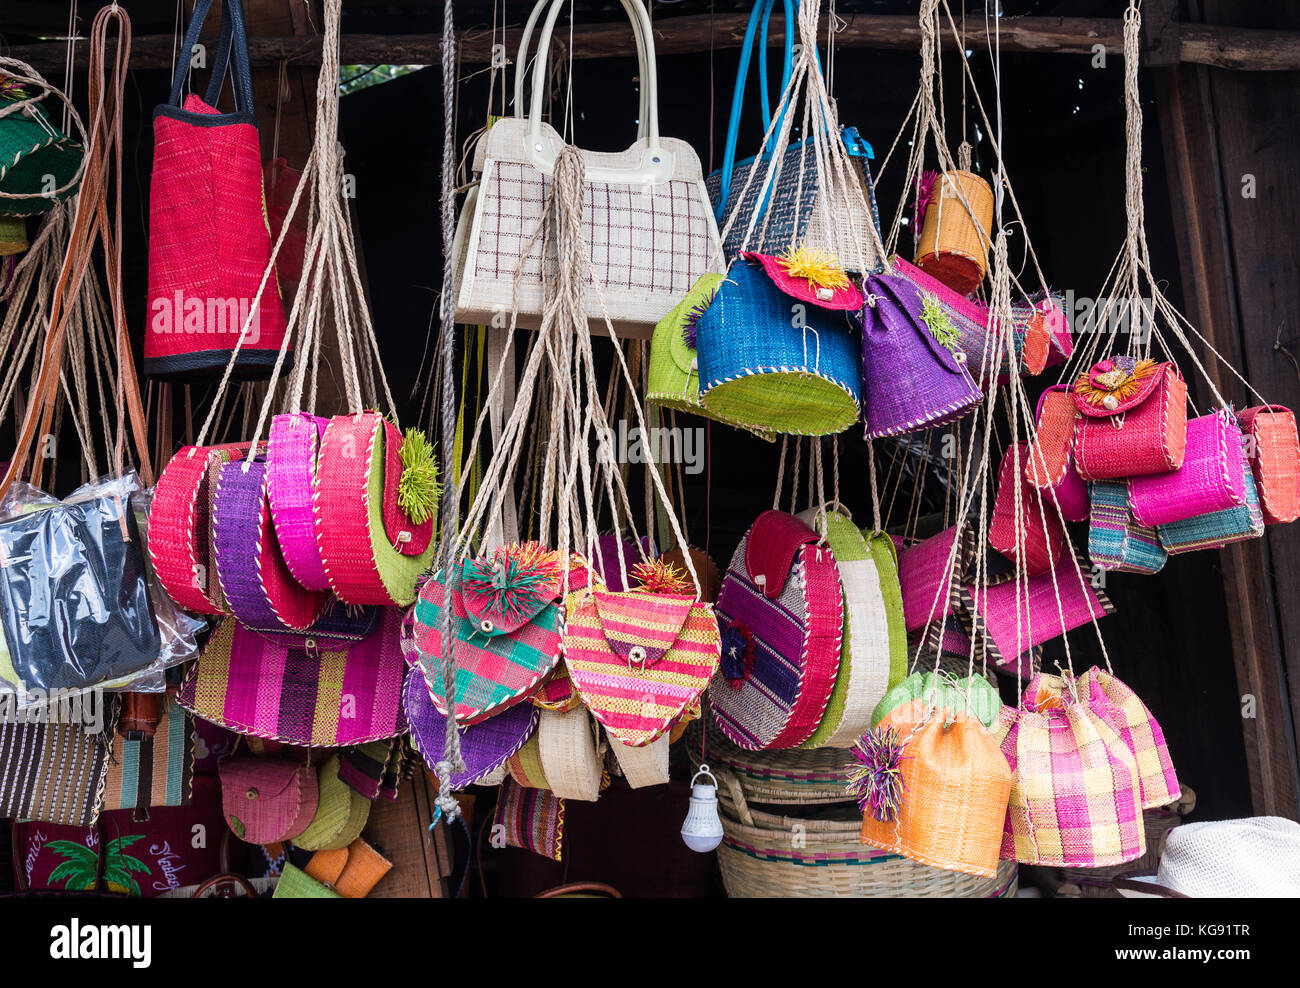 Colorful hand-made purses and handbags for sale at a local market. Madagascar, Africa. - Stock Image